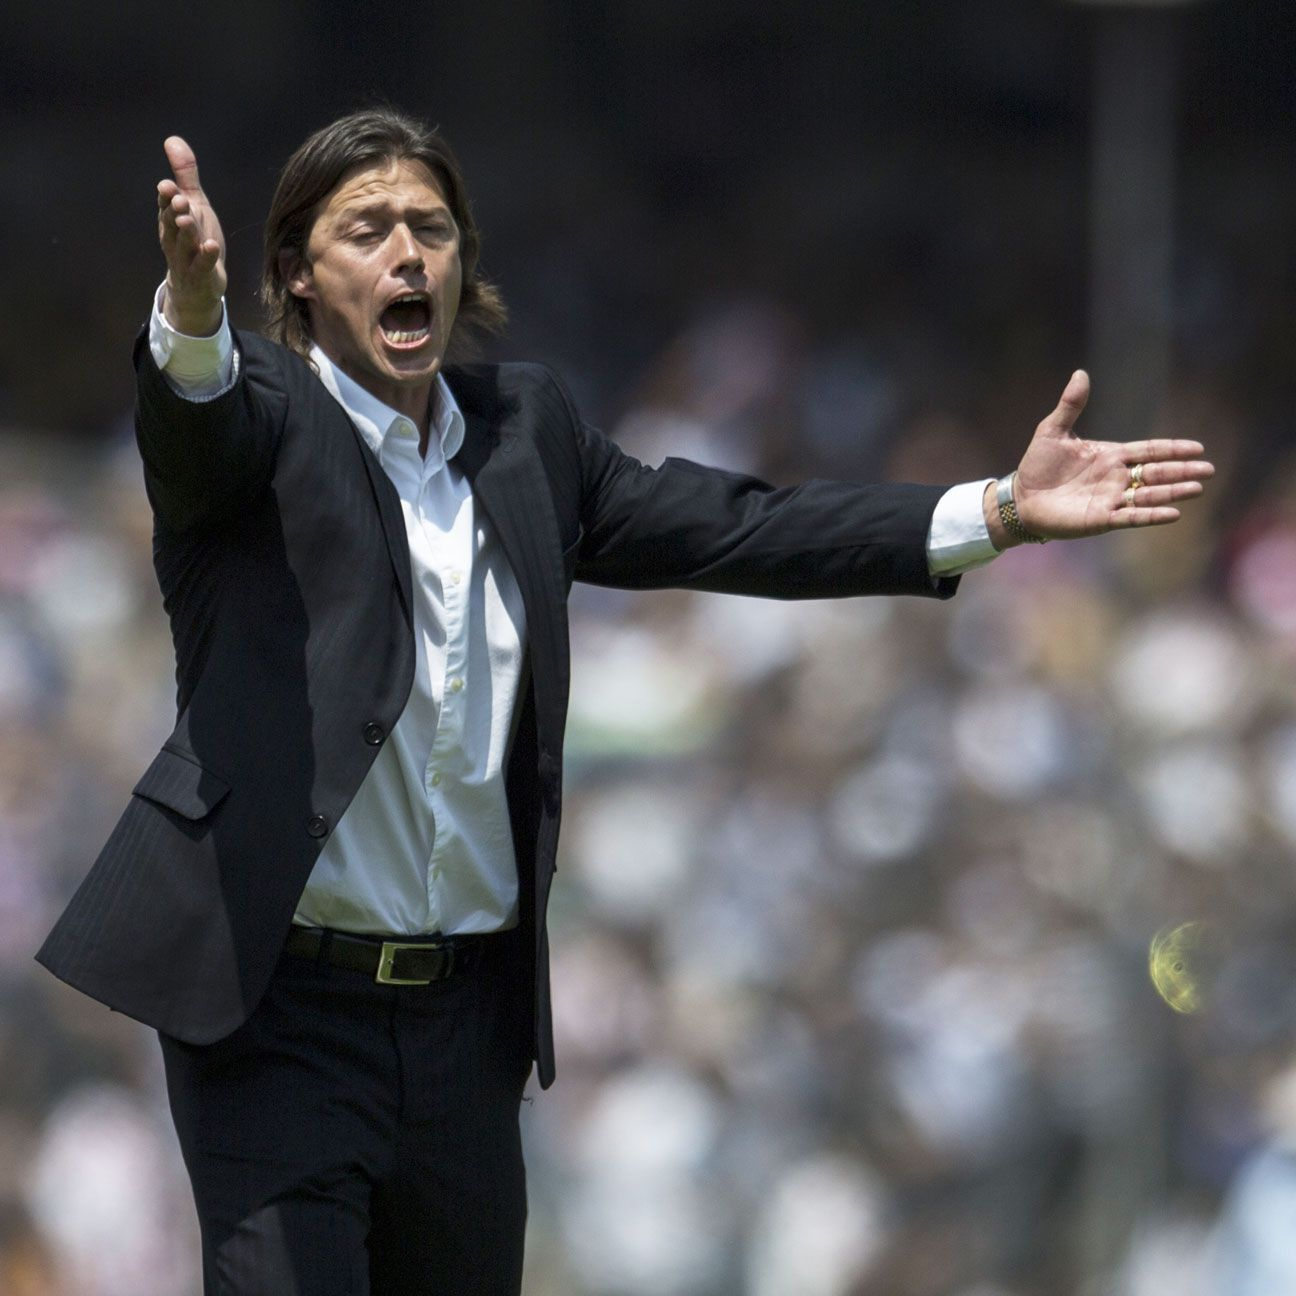 The pressure will be on Chivas boss Matias Almeyda to deliver some early wins to ease the relegation pressure on the Guadalajara club.